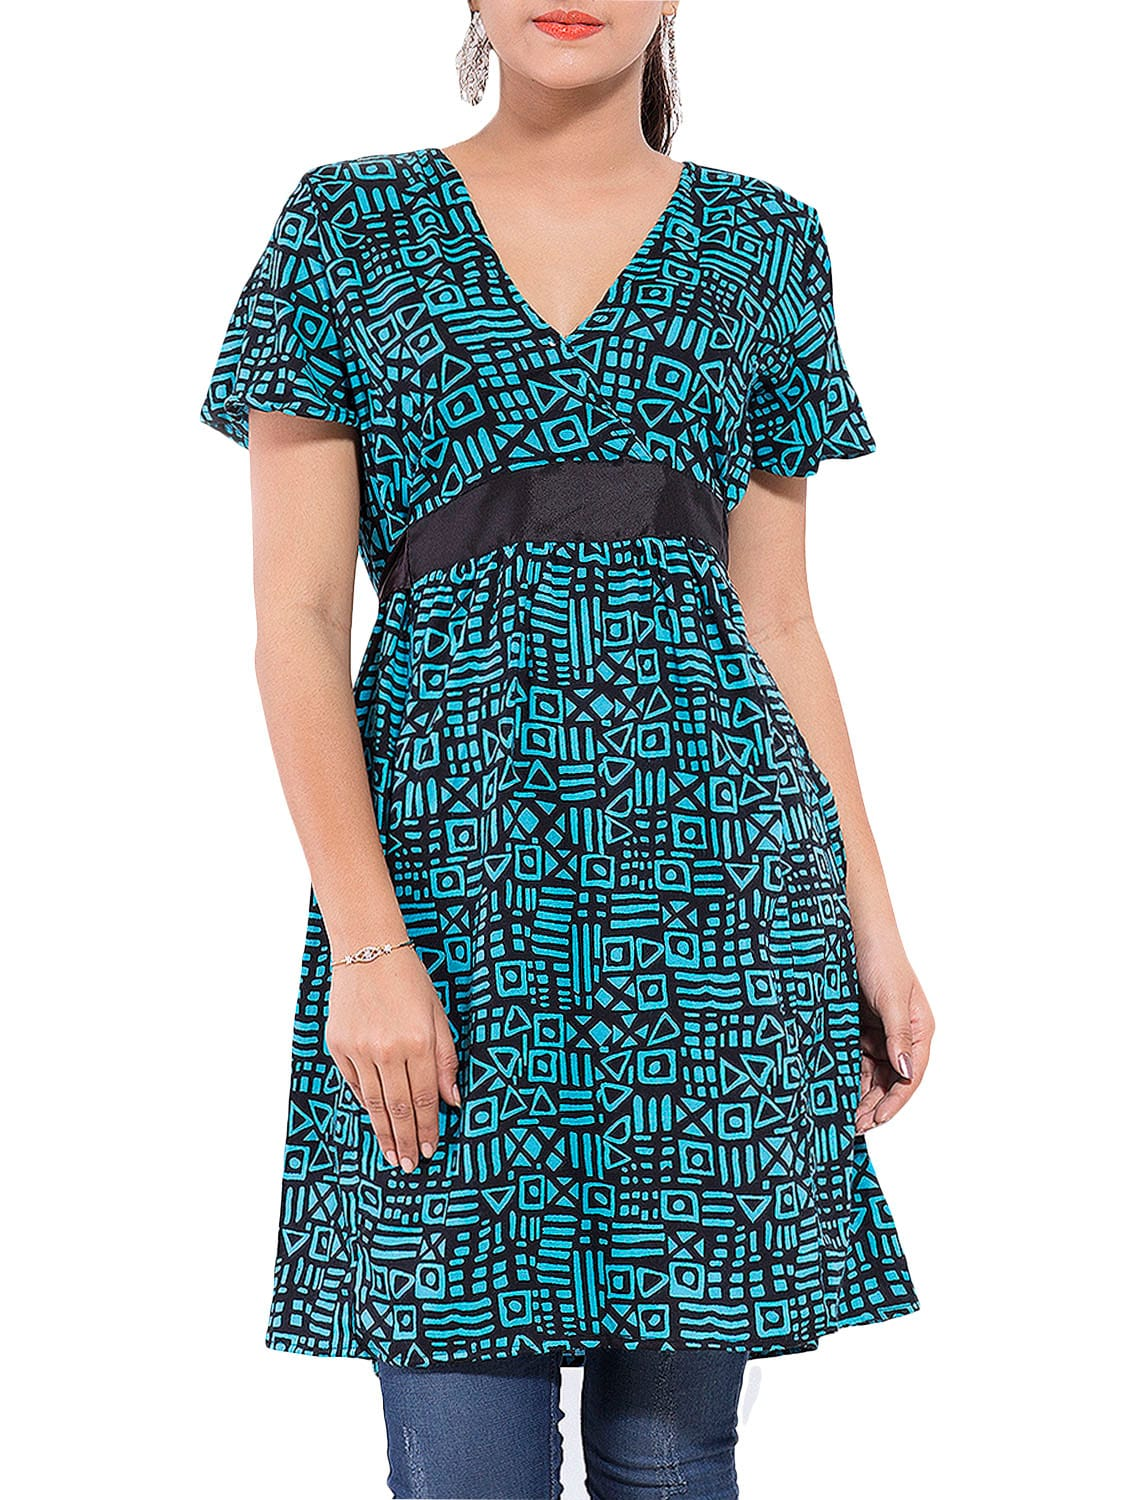 12d3489cd5e Buy Green Rayon Printed Tunic for Women from Goodwill for ₹519 at 48% off |  2019 Limeroad.com